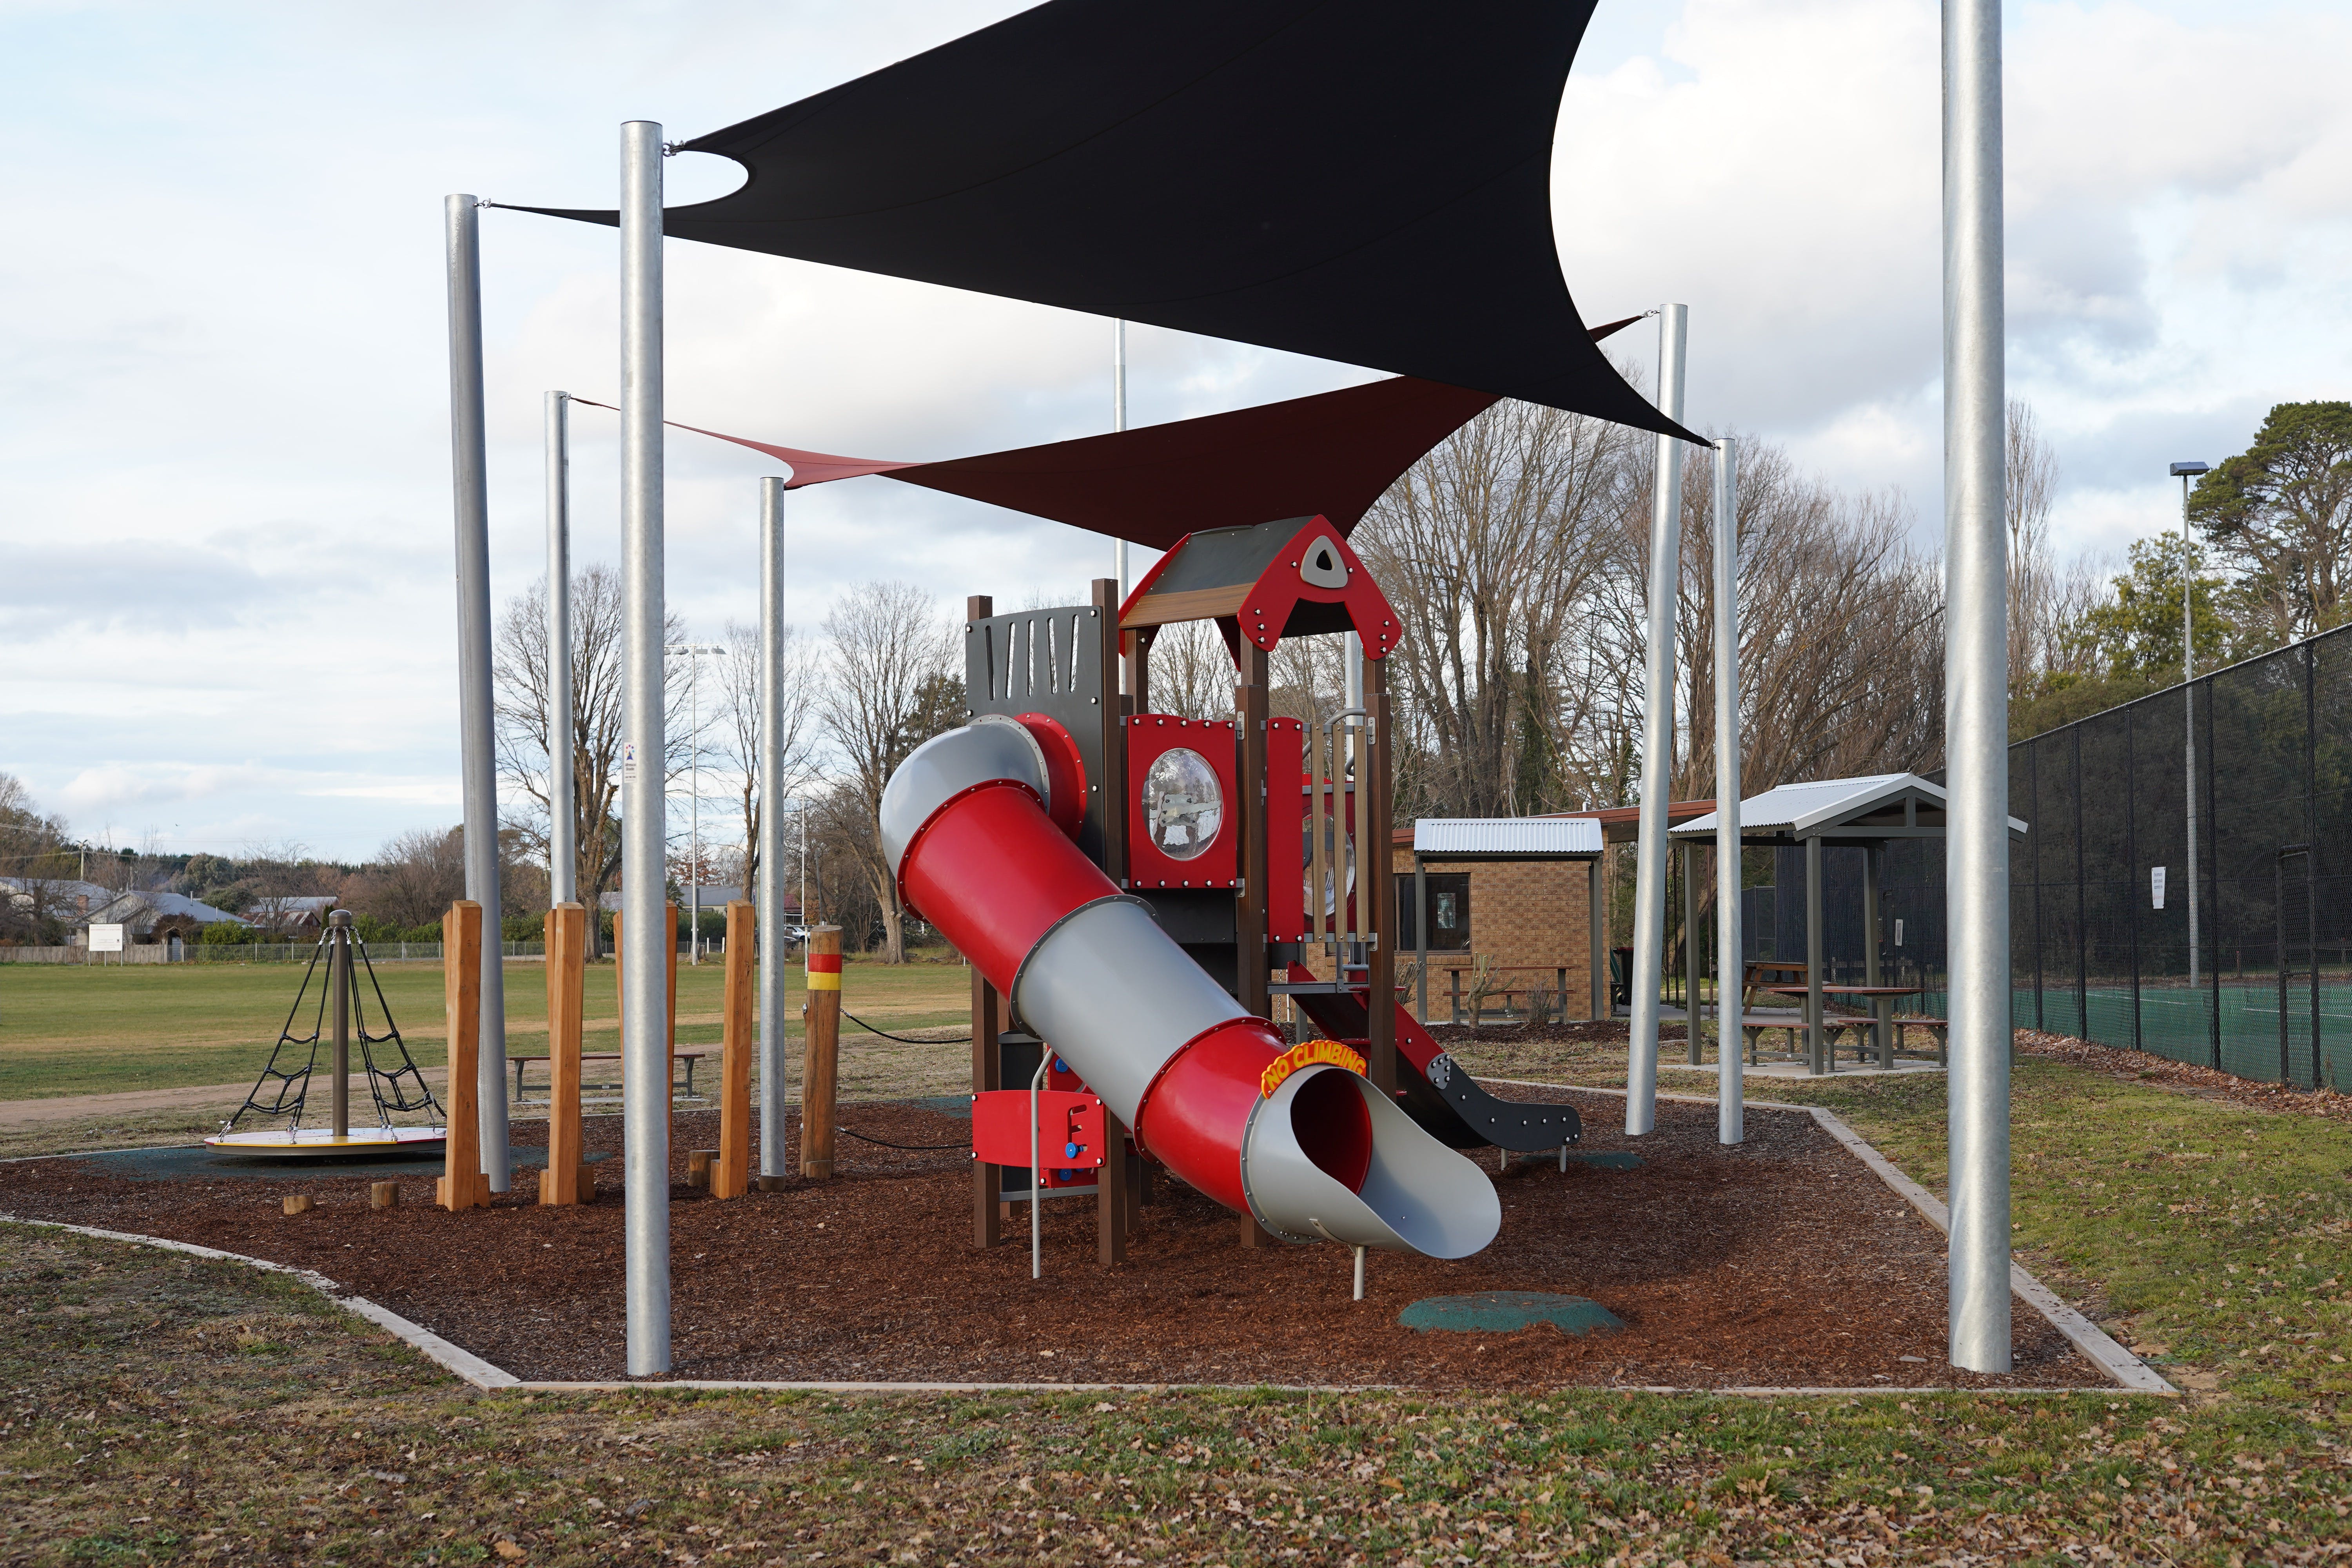 Braidwood Recreation Grounds and Playground - Accommodation Burleigh